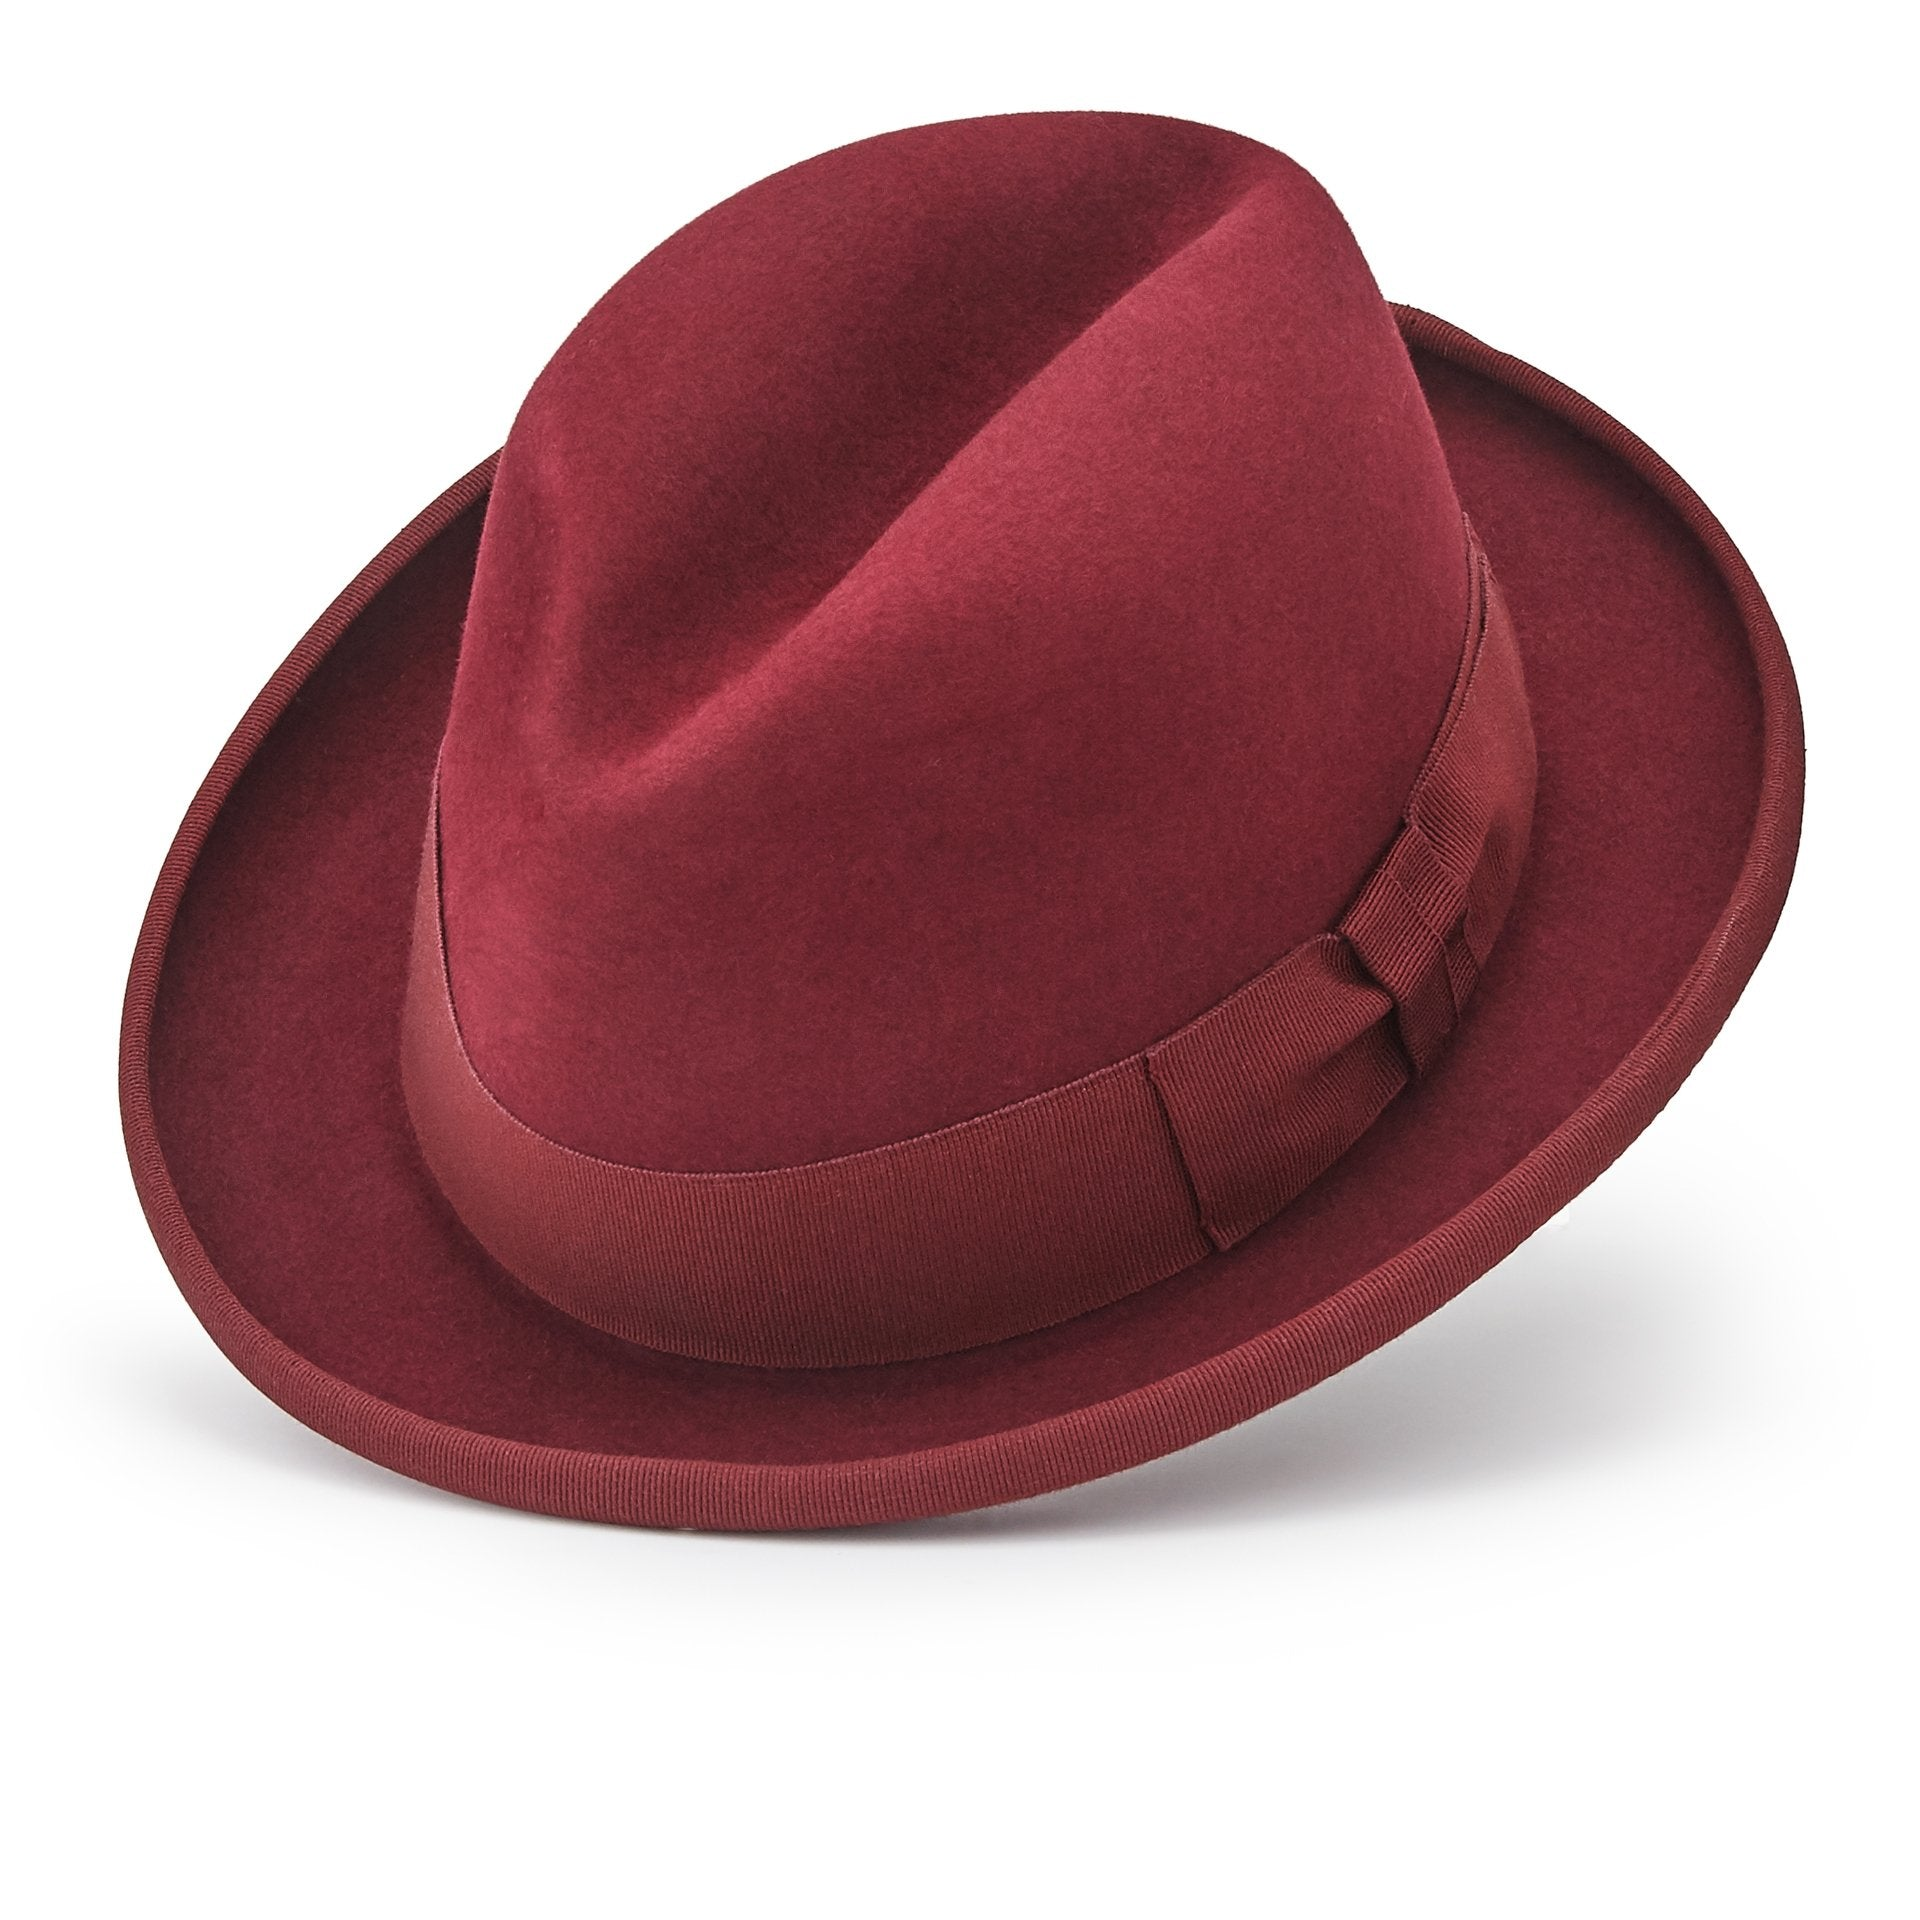 Supreme Homburg - Fedoras & homburgs - Lock & Co. Hatters London UK